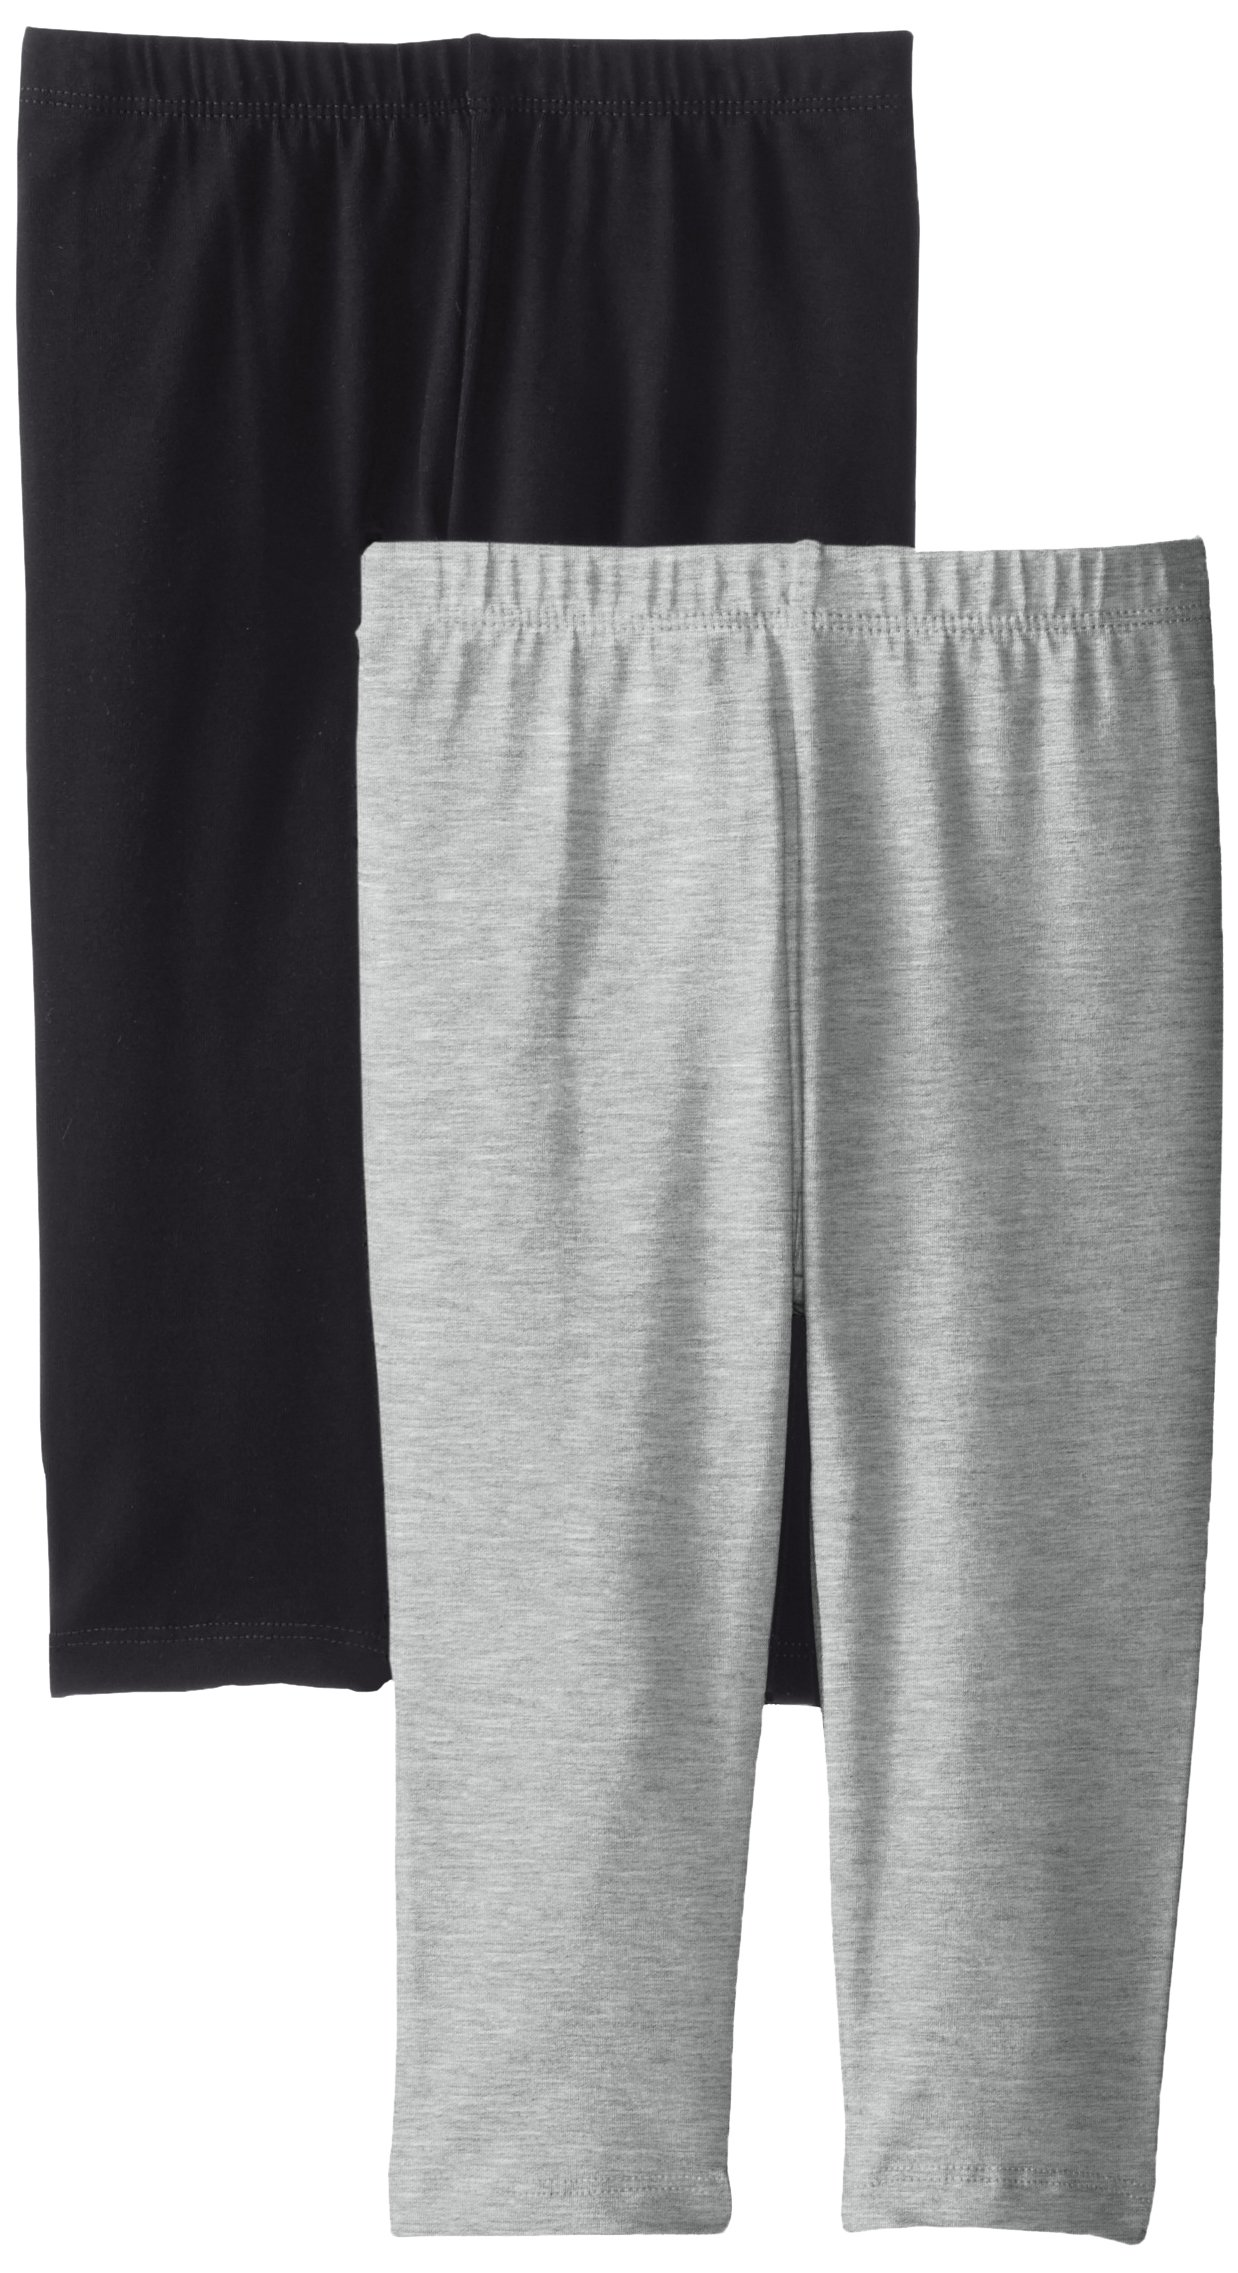 The Children's Place Big Girls' Cropped Legging (Pack of 2), Black/Heather Grey, X-Large (14)